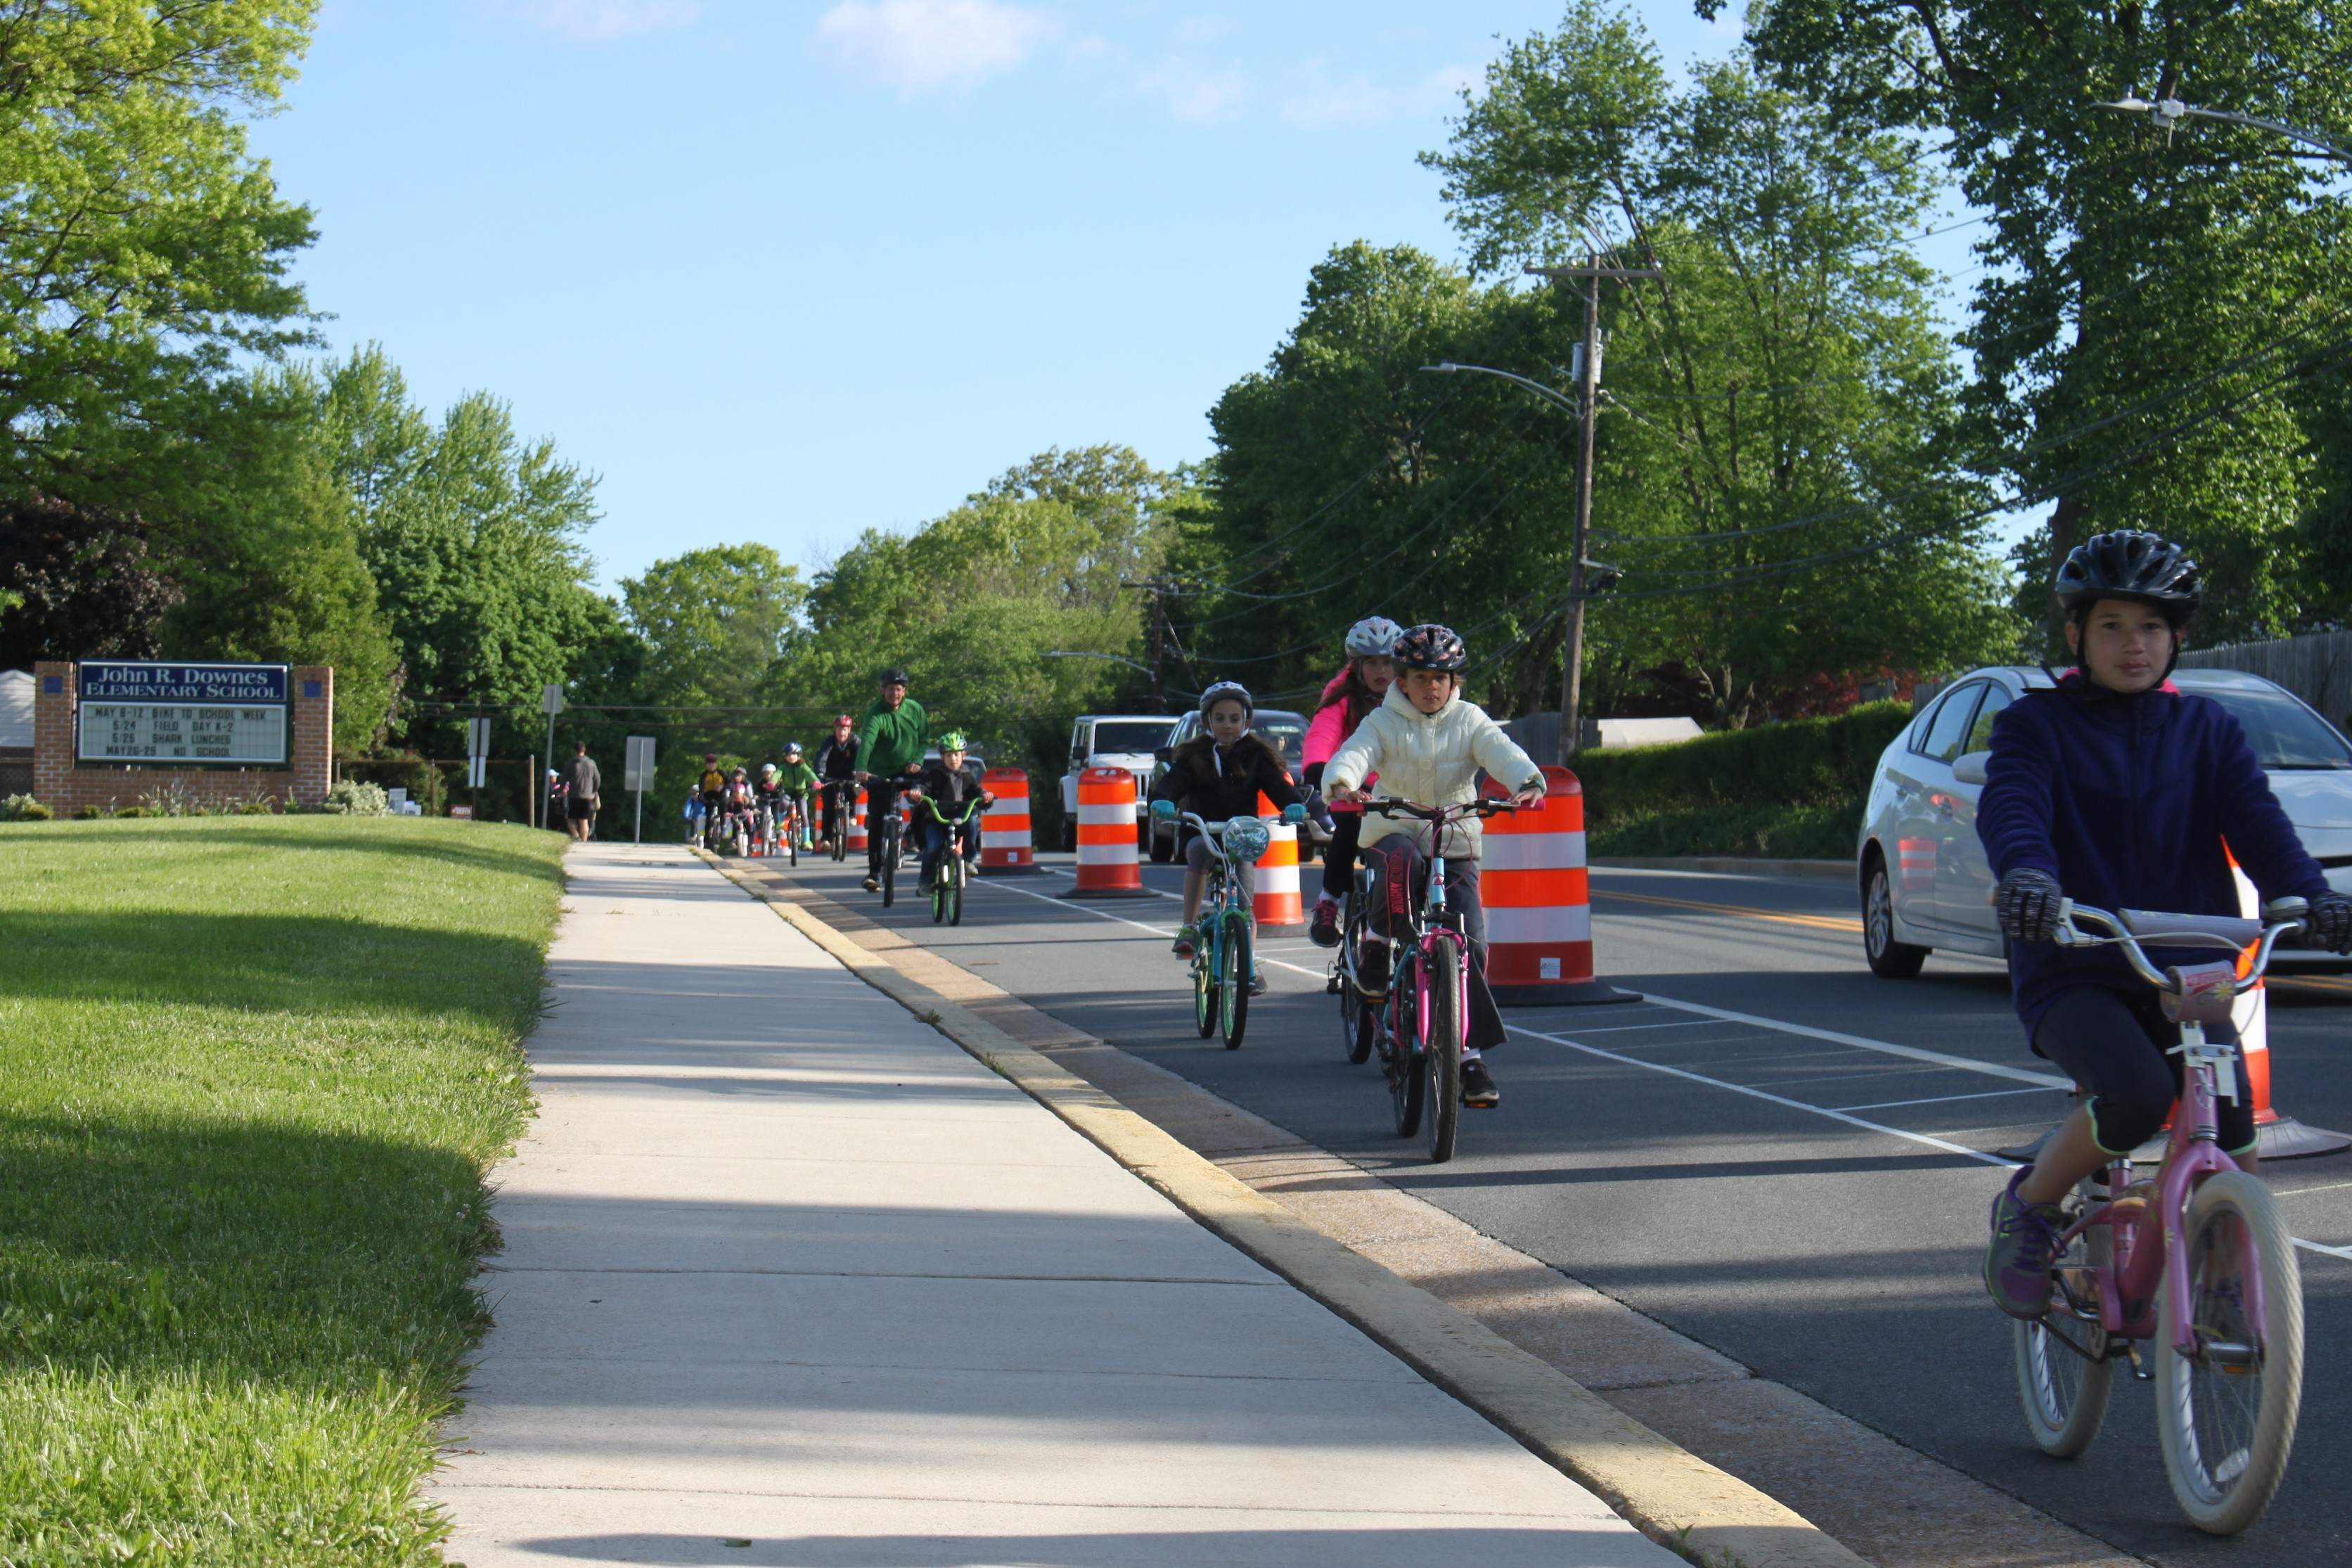 Students ride into school during 2017 Downes Elementary School Bike to School Week